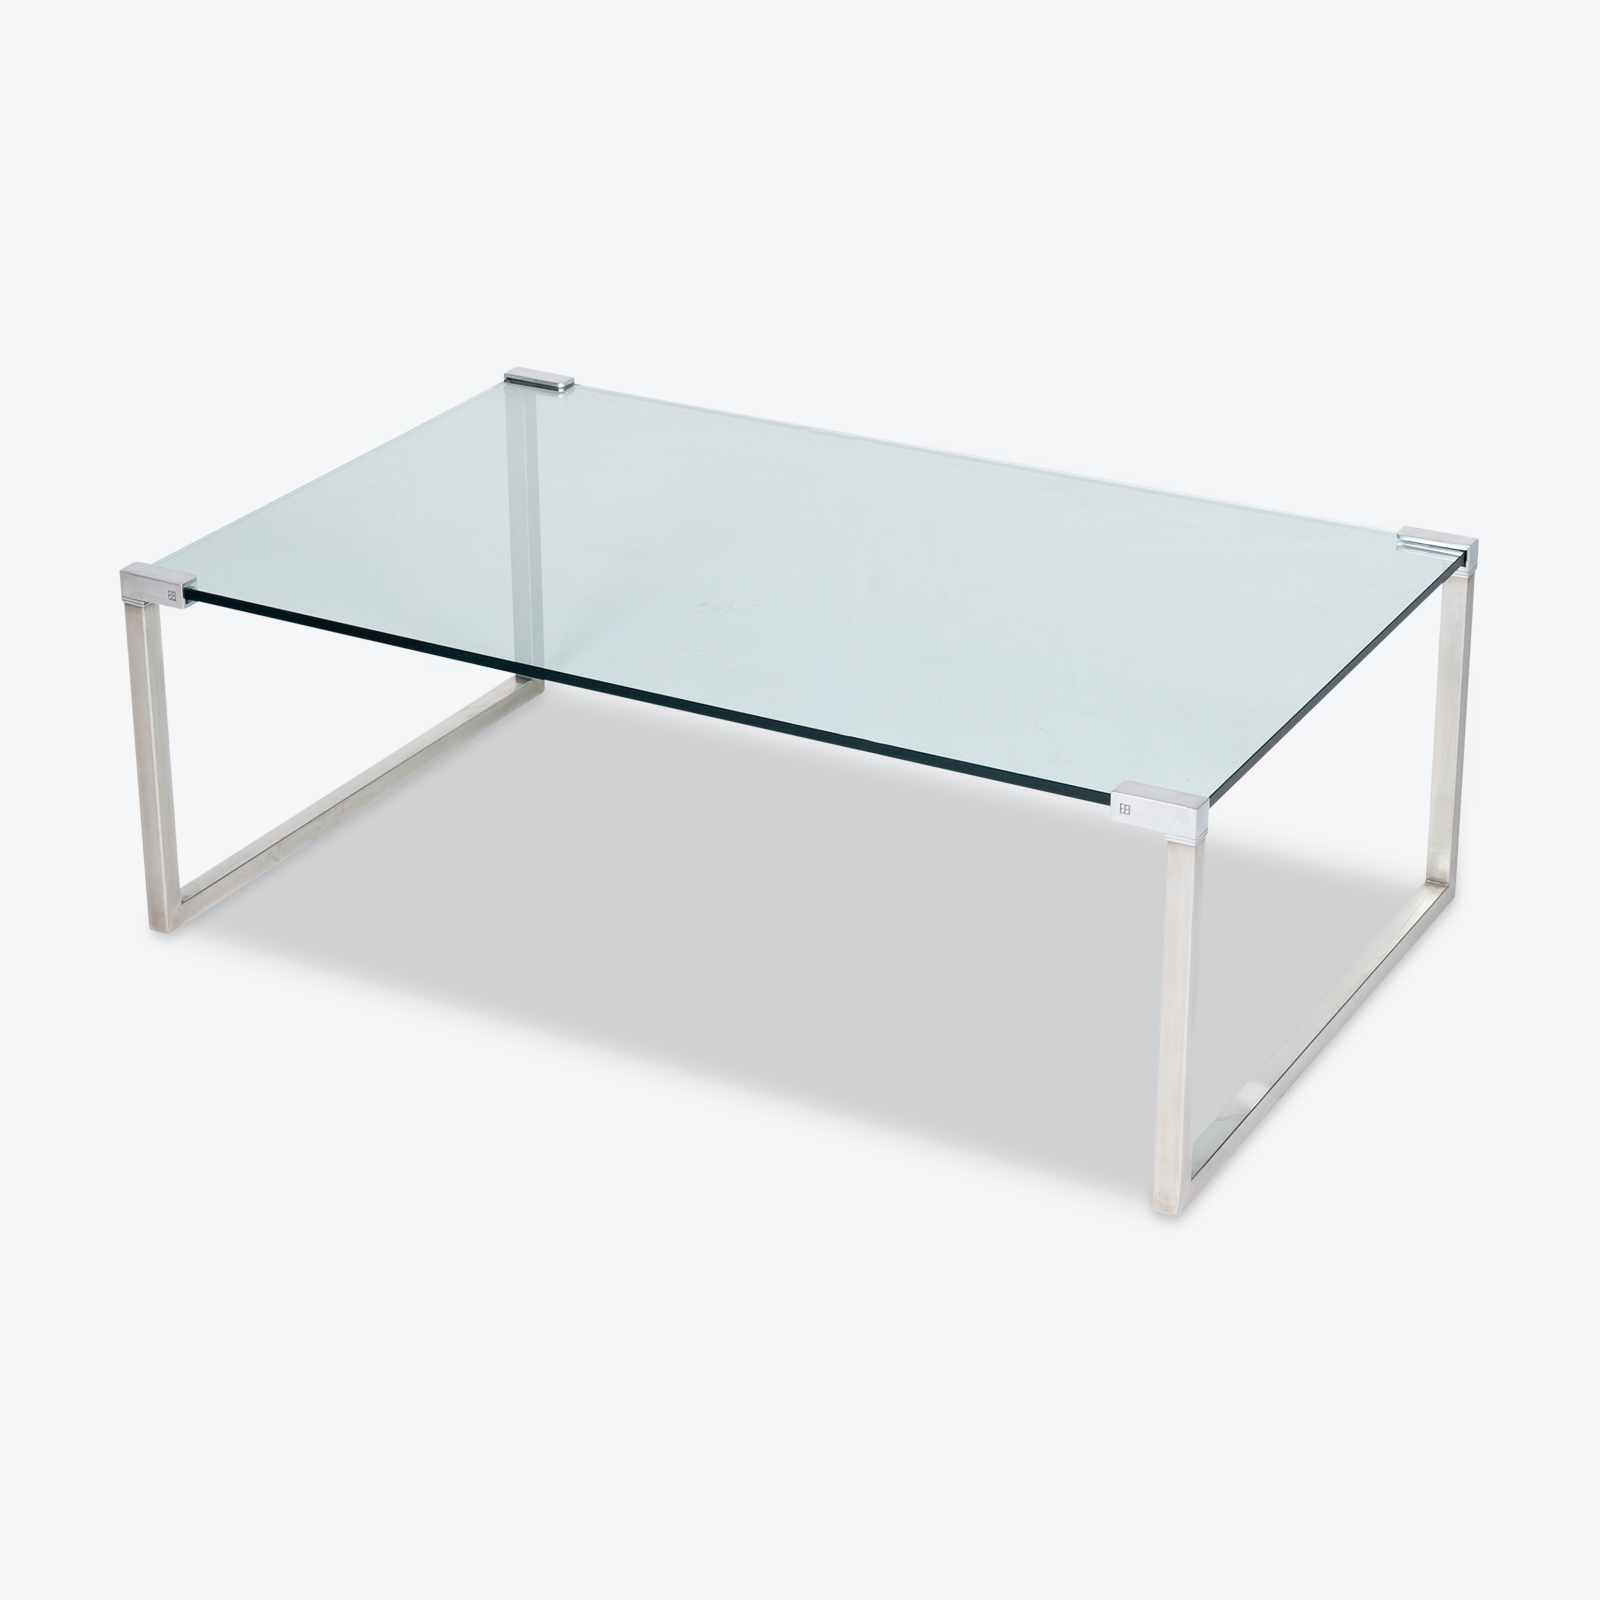 Model T53 Coffee Table By Peter Ghyczy, 1970s, The Netherlands Hero